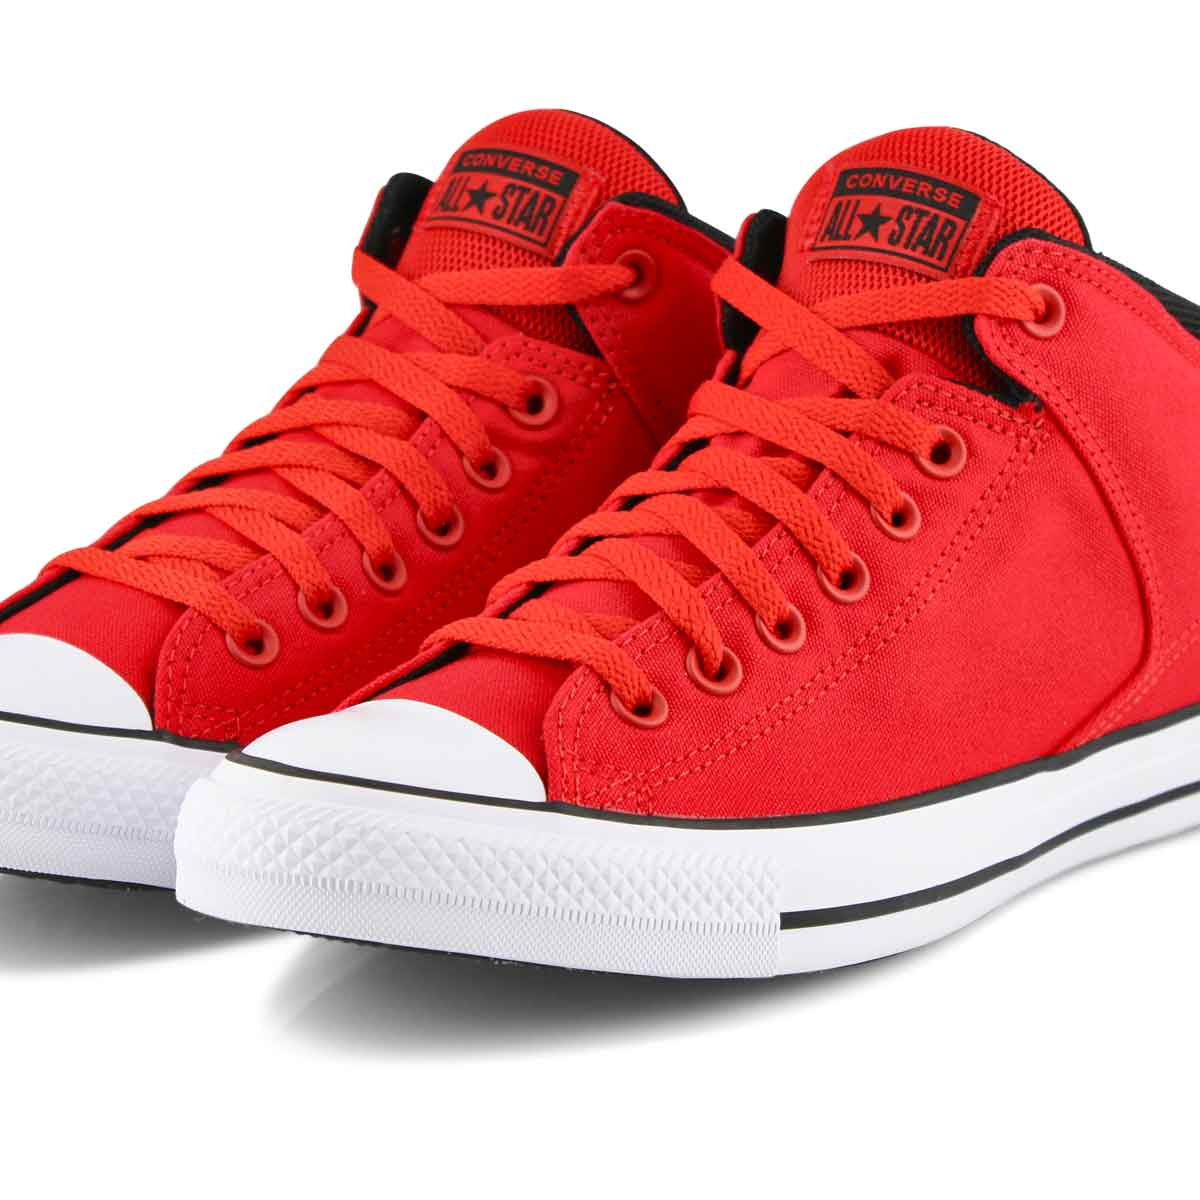 Mns CTAS High Street red snkr